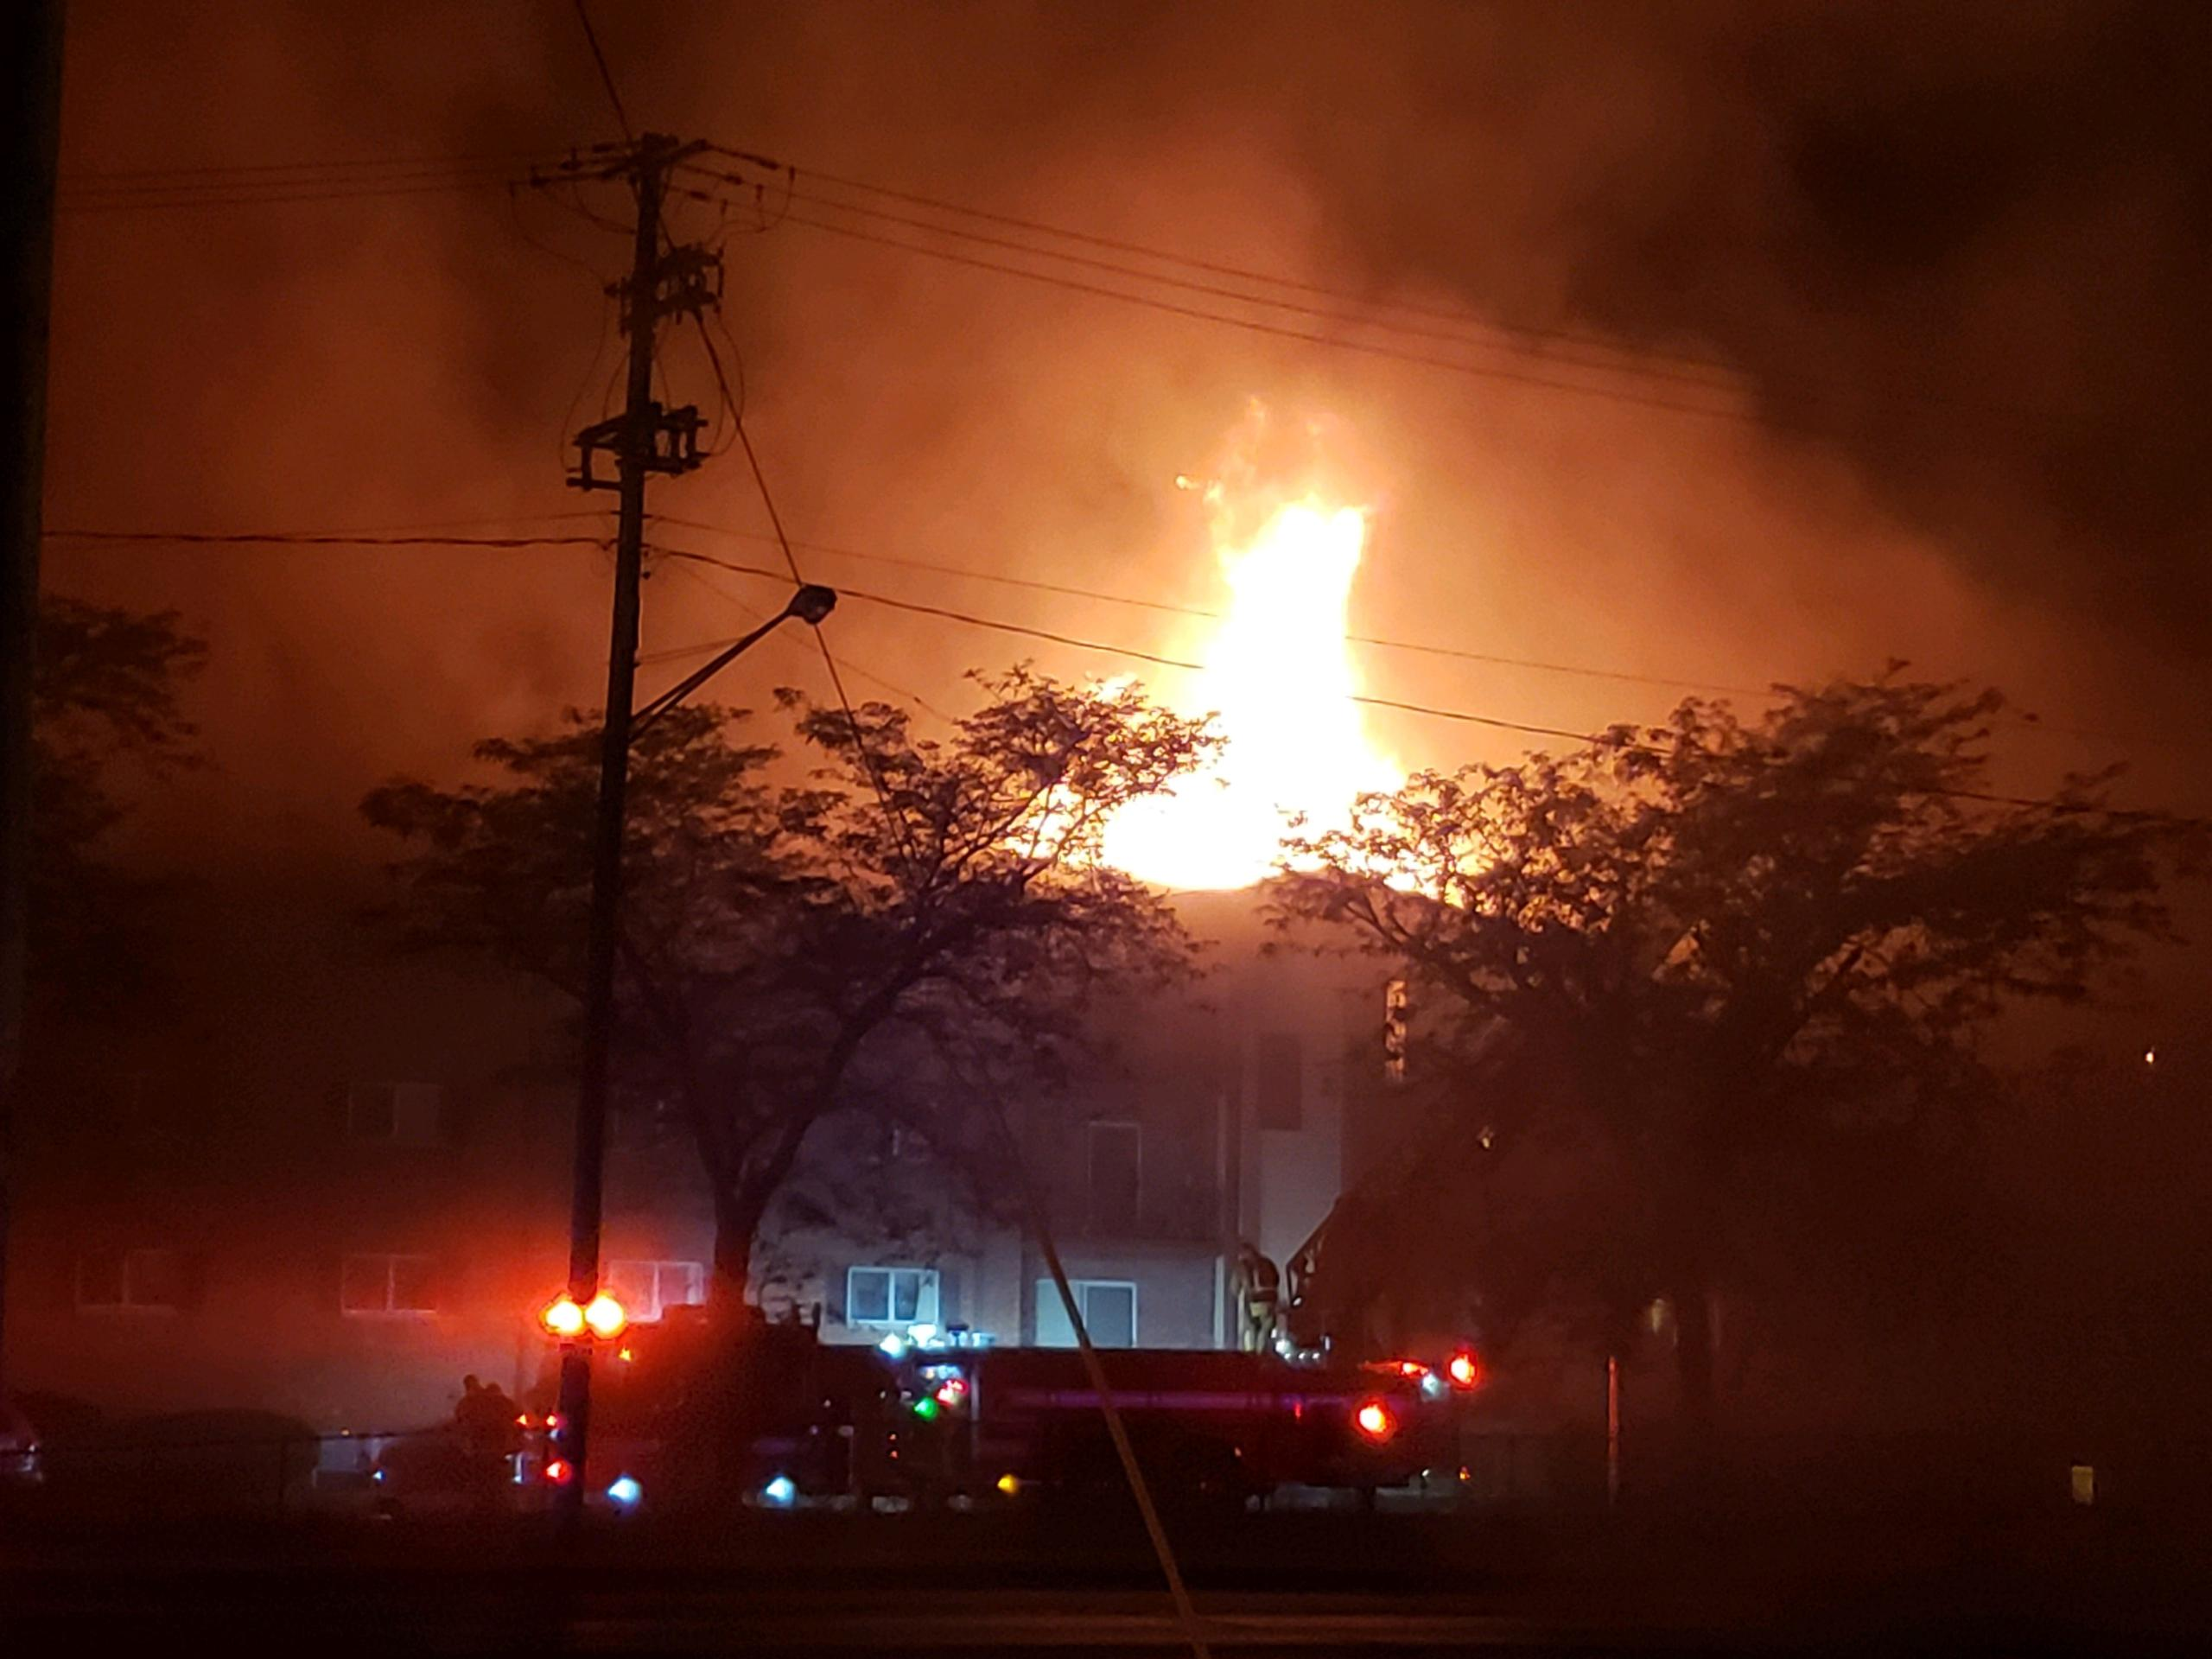 Battle Creek Fire Department is currently responding to an active structure fire at 80 Riverside and asking the public to avoid the area, according to Calhoun County Dispatch. (WWMT/Tyler Shore)